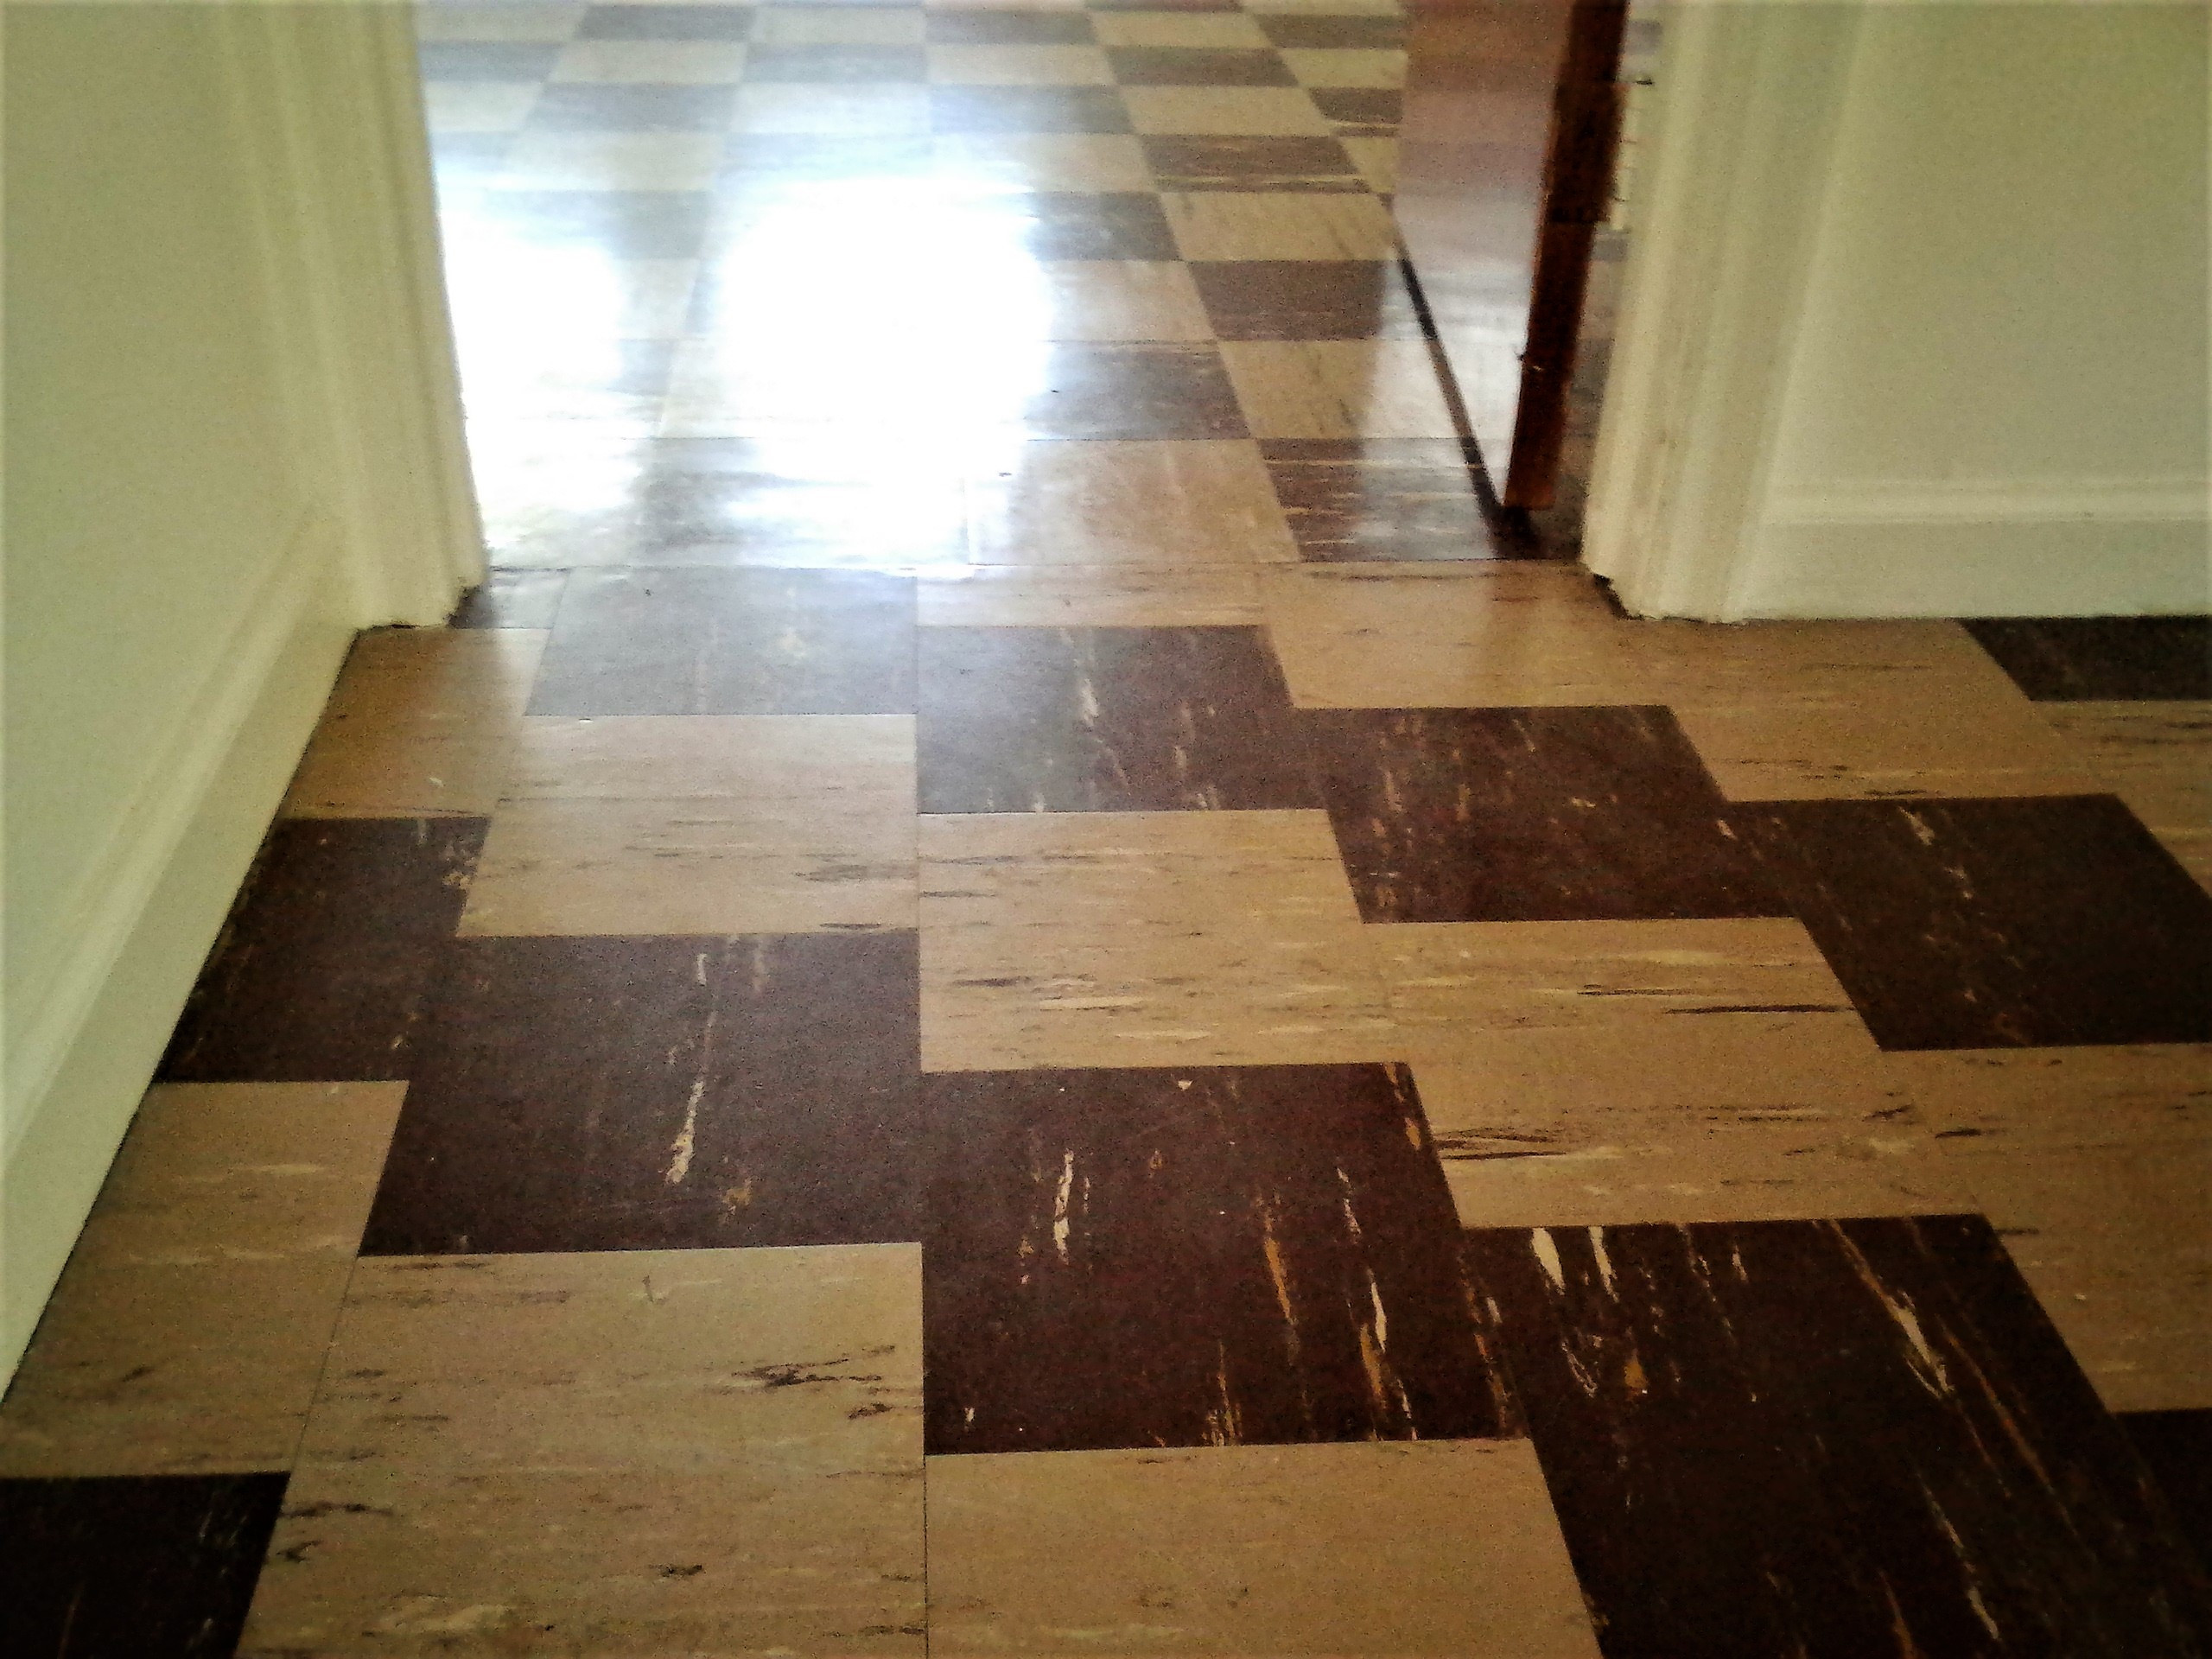 how to glue hardwood floors to concrete of asbestos flooring do you really need that abatement the flooring blog with old vinyl asbestos tile flooring